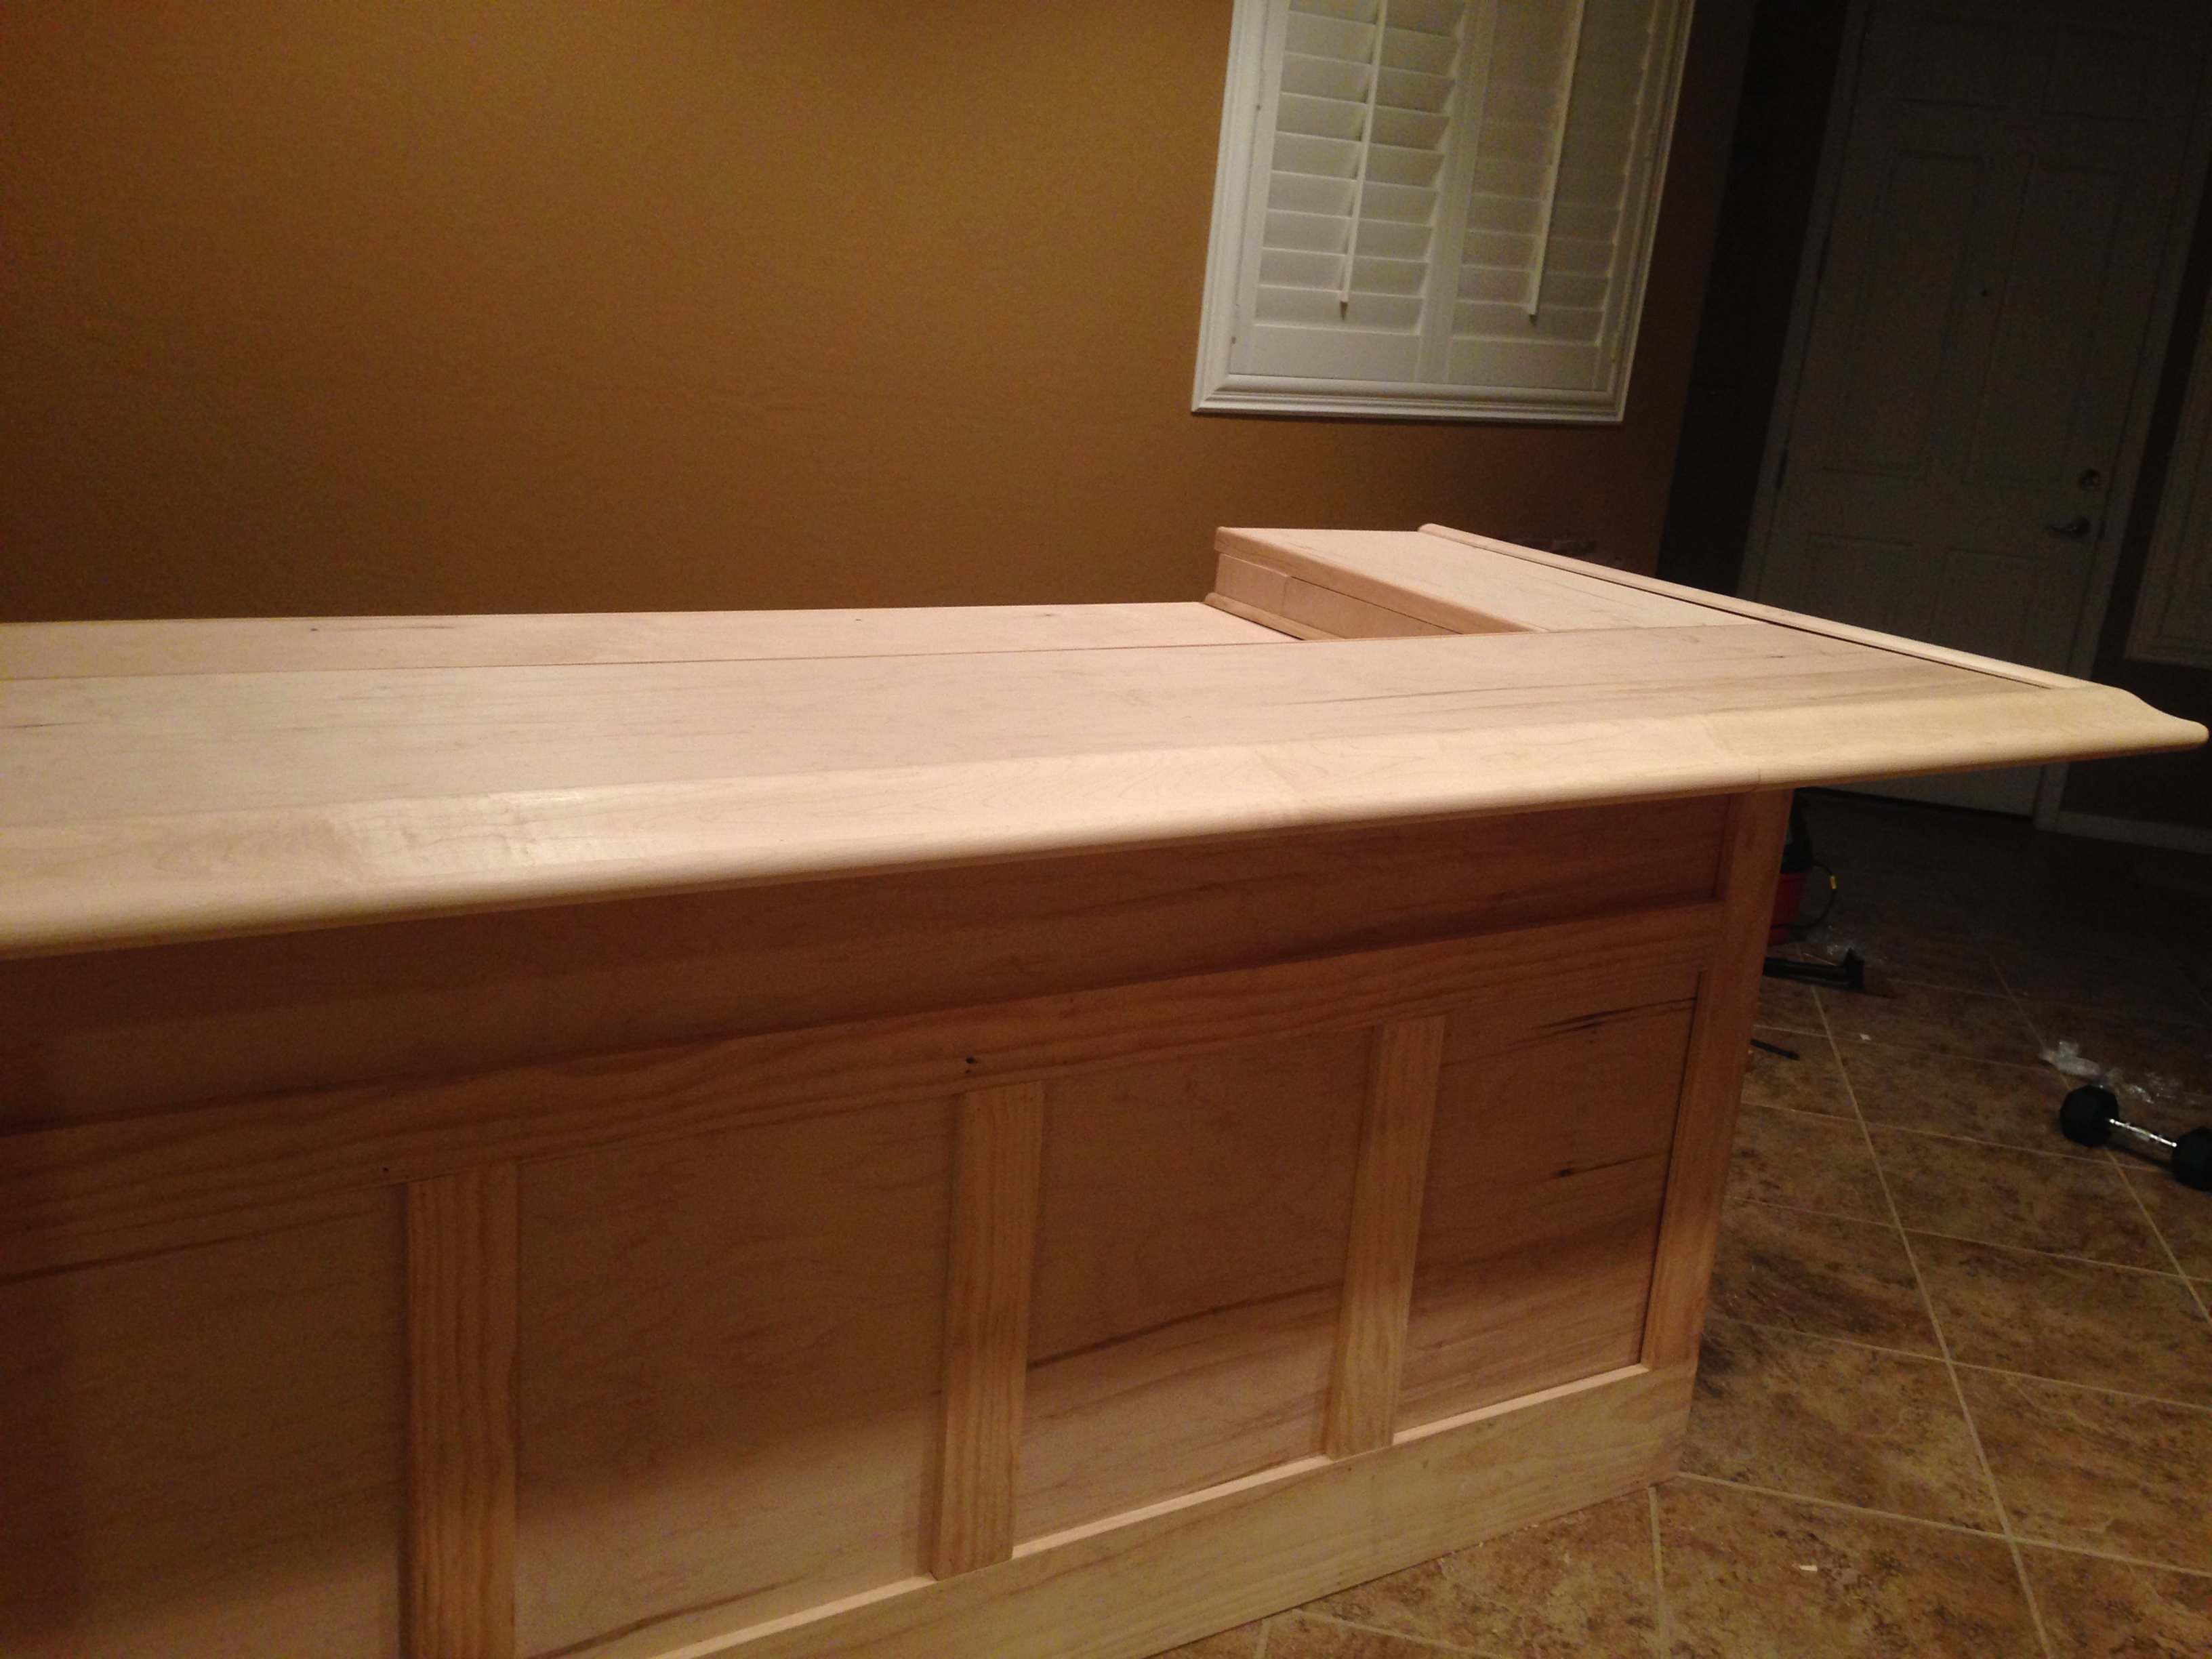 build your own home bar build your own dog house building your own small home. Black Bedroom Furniture Sets. Home Design Ideas